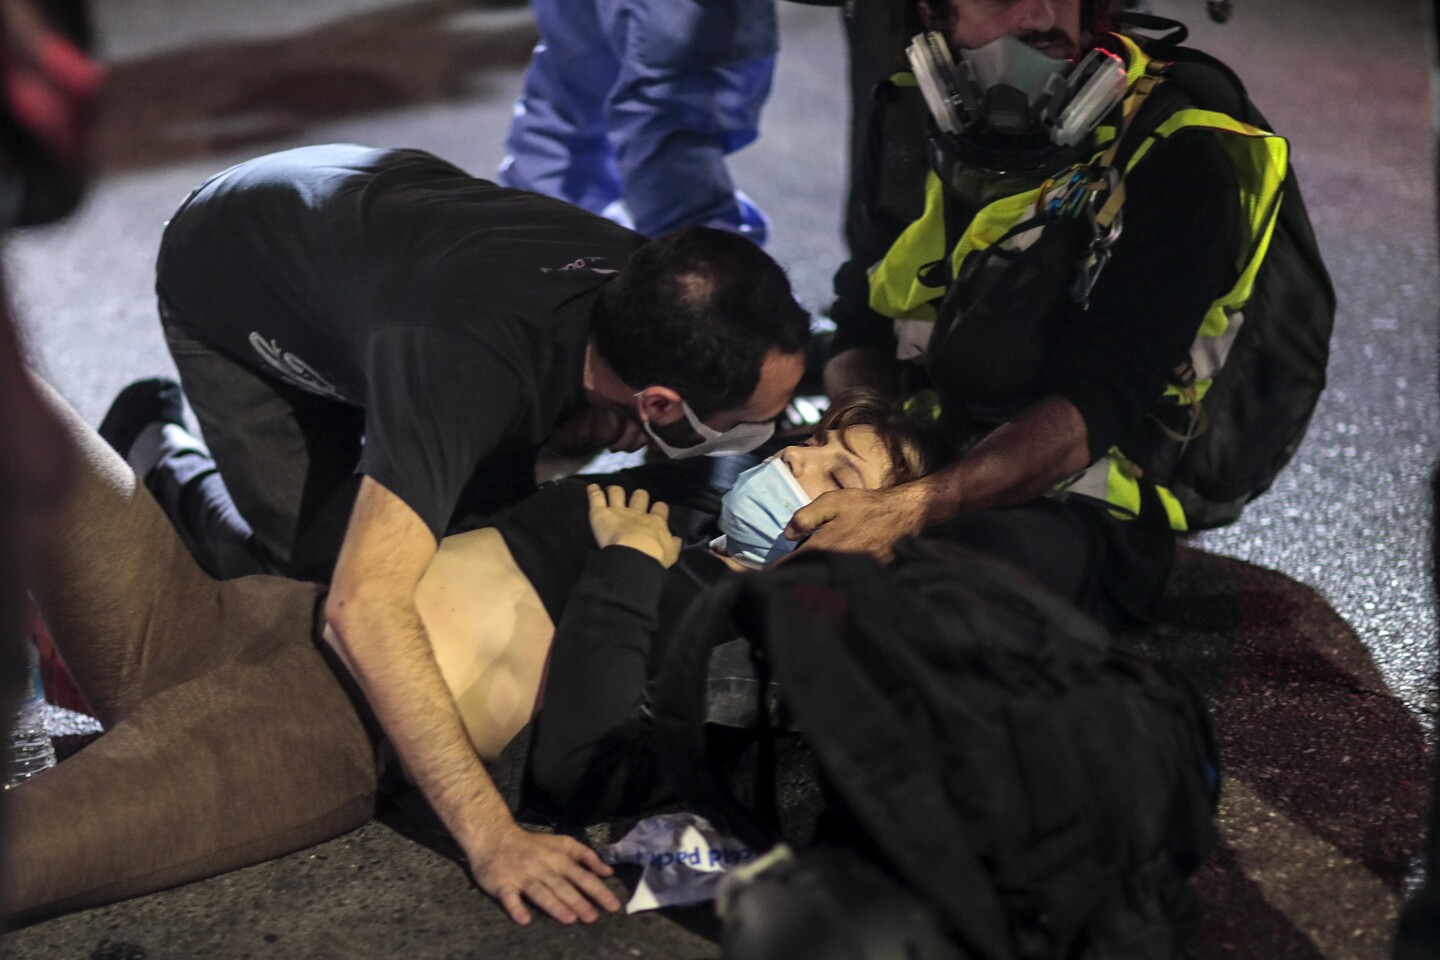 Los Angeles, CA, Thursday, September 24, 2020 - A victim is comforted after being hit by a hit and run driver on Sunset Blvd. as she was protesting the Kentucky grand jury decision in the case of Breonna Taylor's death by Louisville police. (Robert Gauthier/ Los Angeles Times)